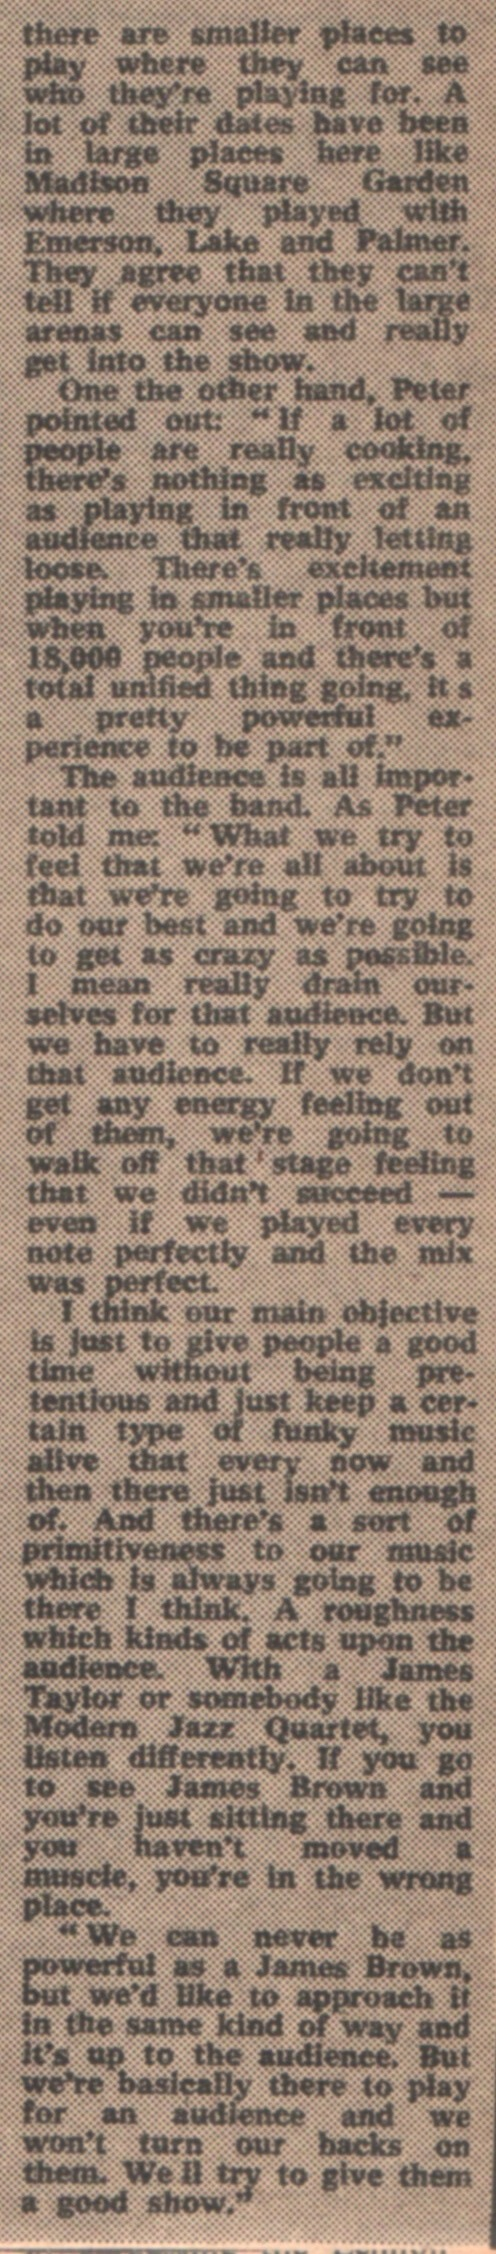 1972 - MELODY MAKER February 5th 04